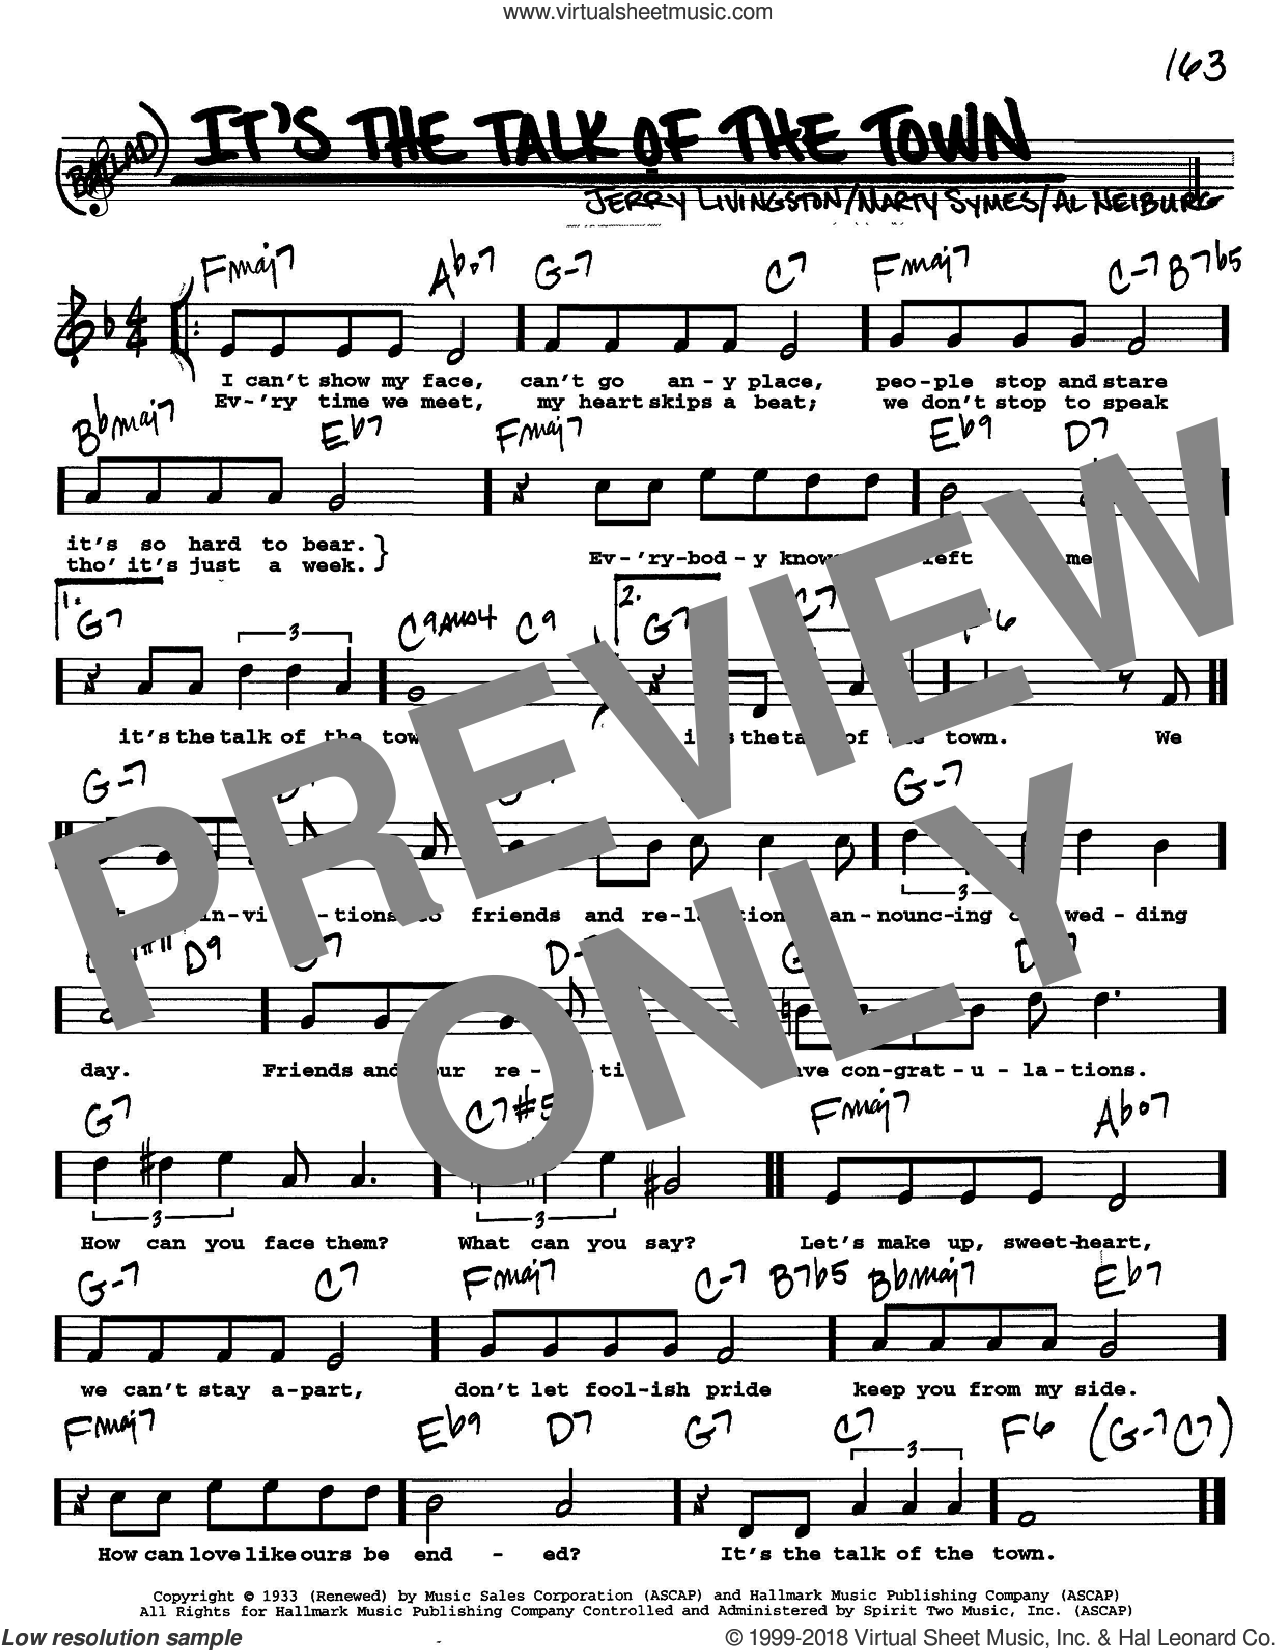 It's The Talk Of The Town sheet music for voice and other instruments (Vocal Volume 2) by Marty Symes